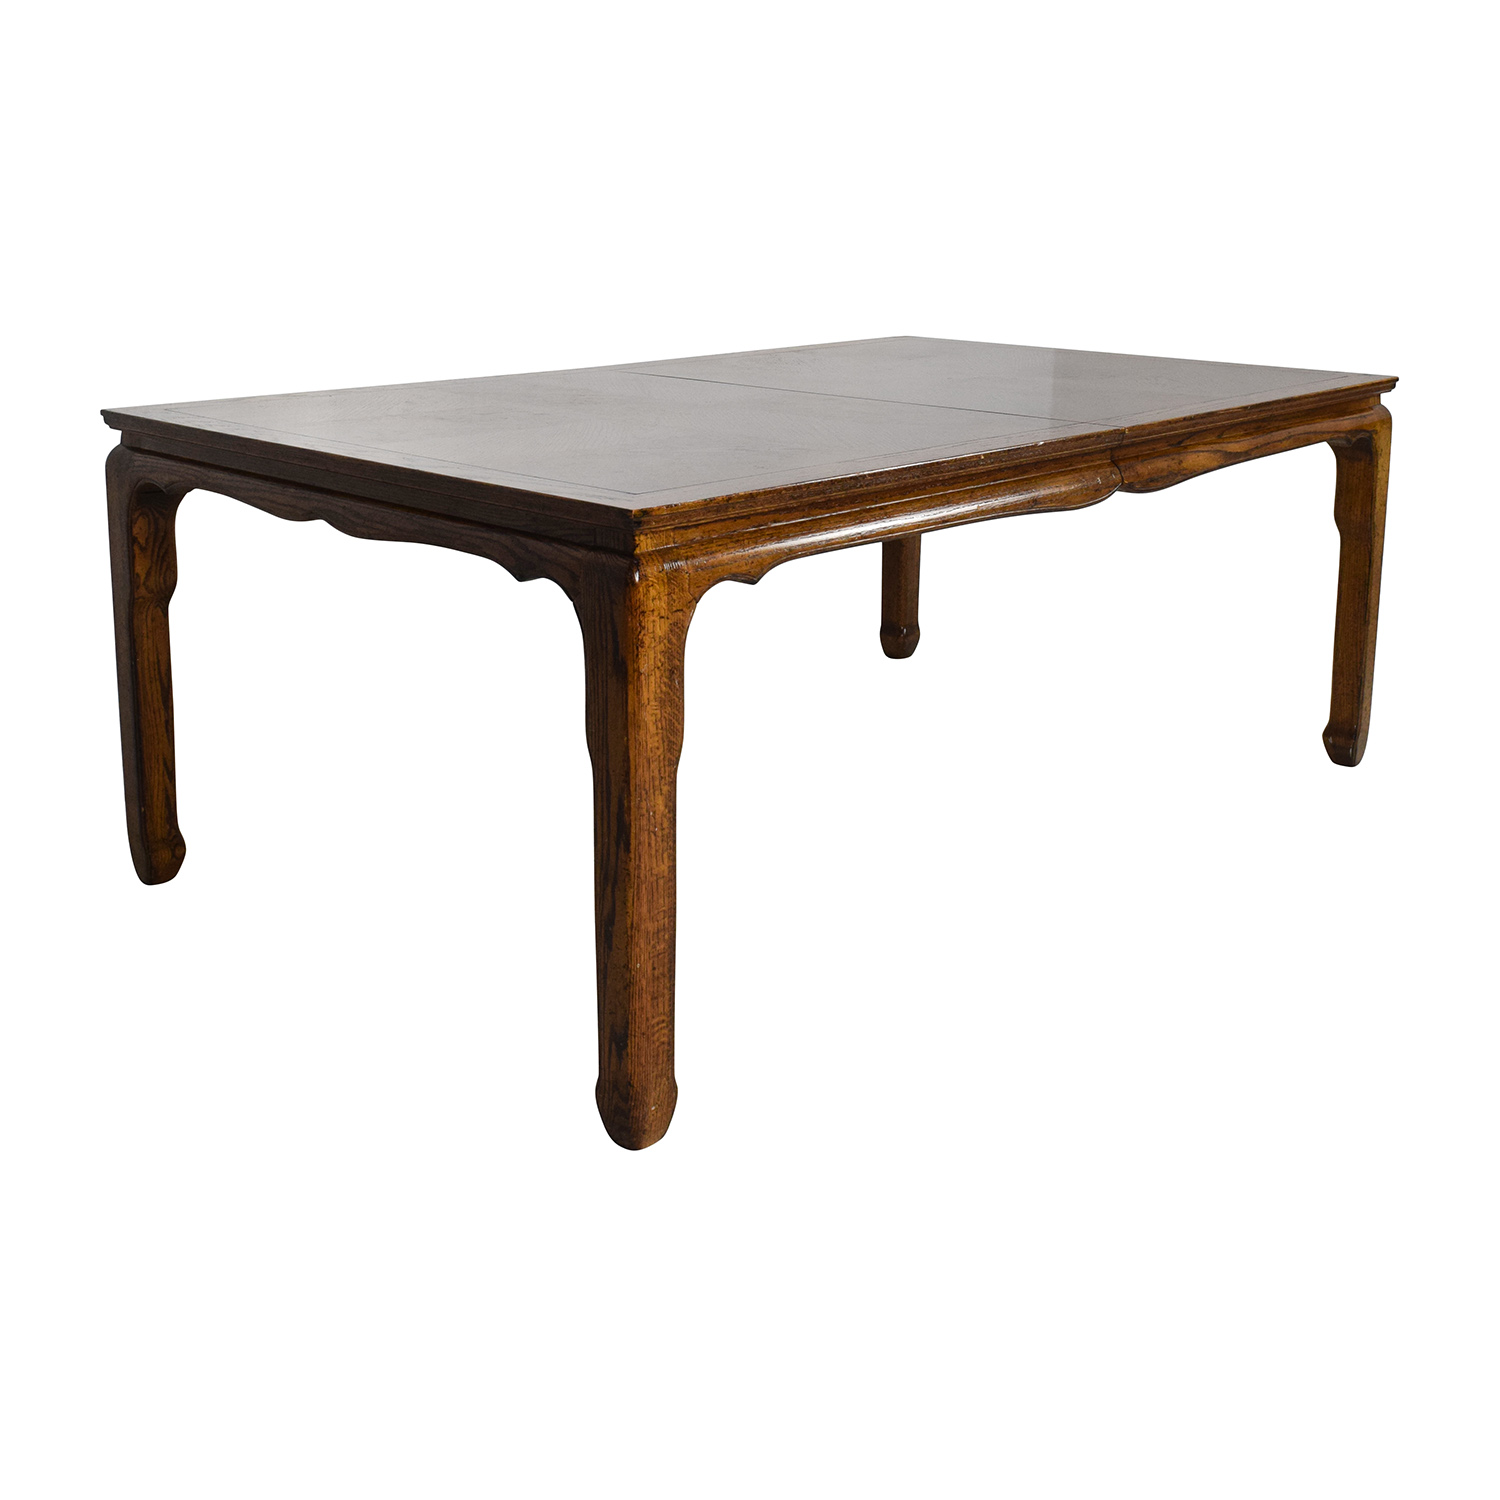 90 off antique style brown wood dining room table tables for Antique dining room tables